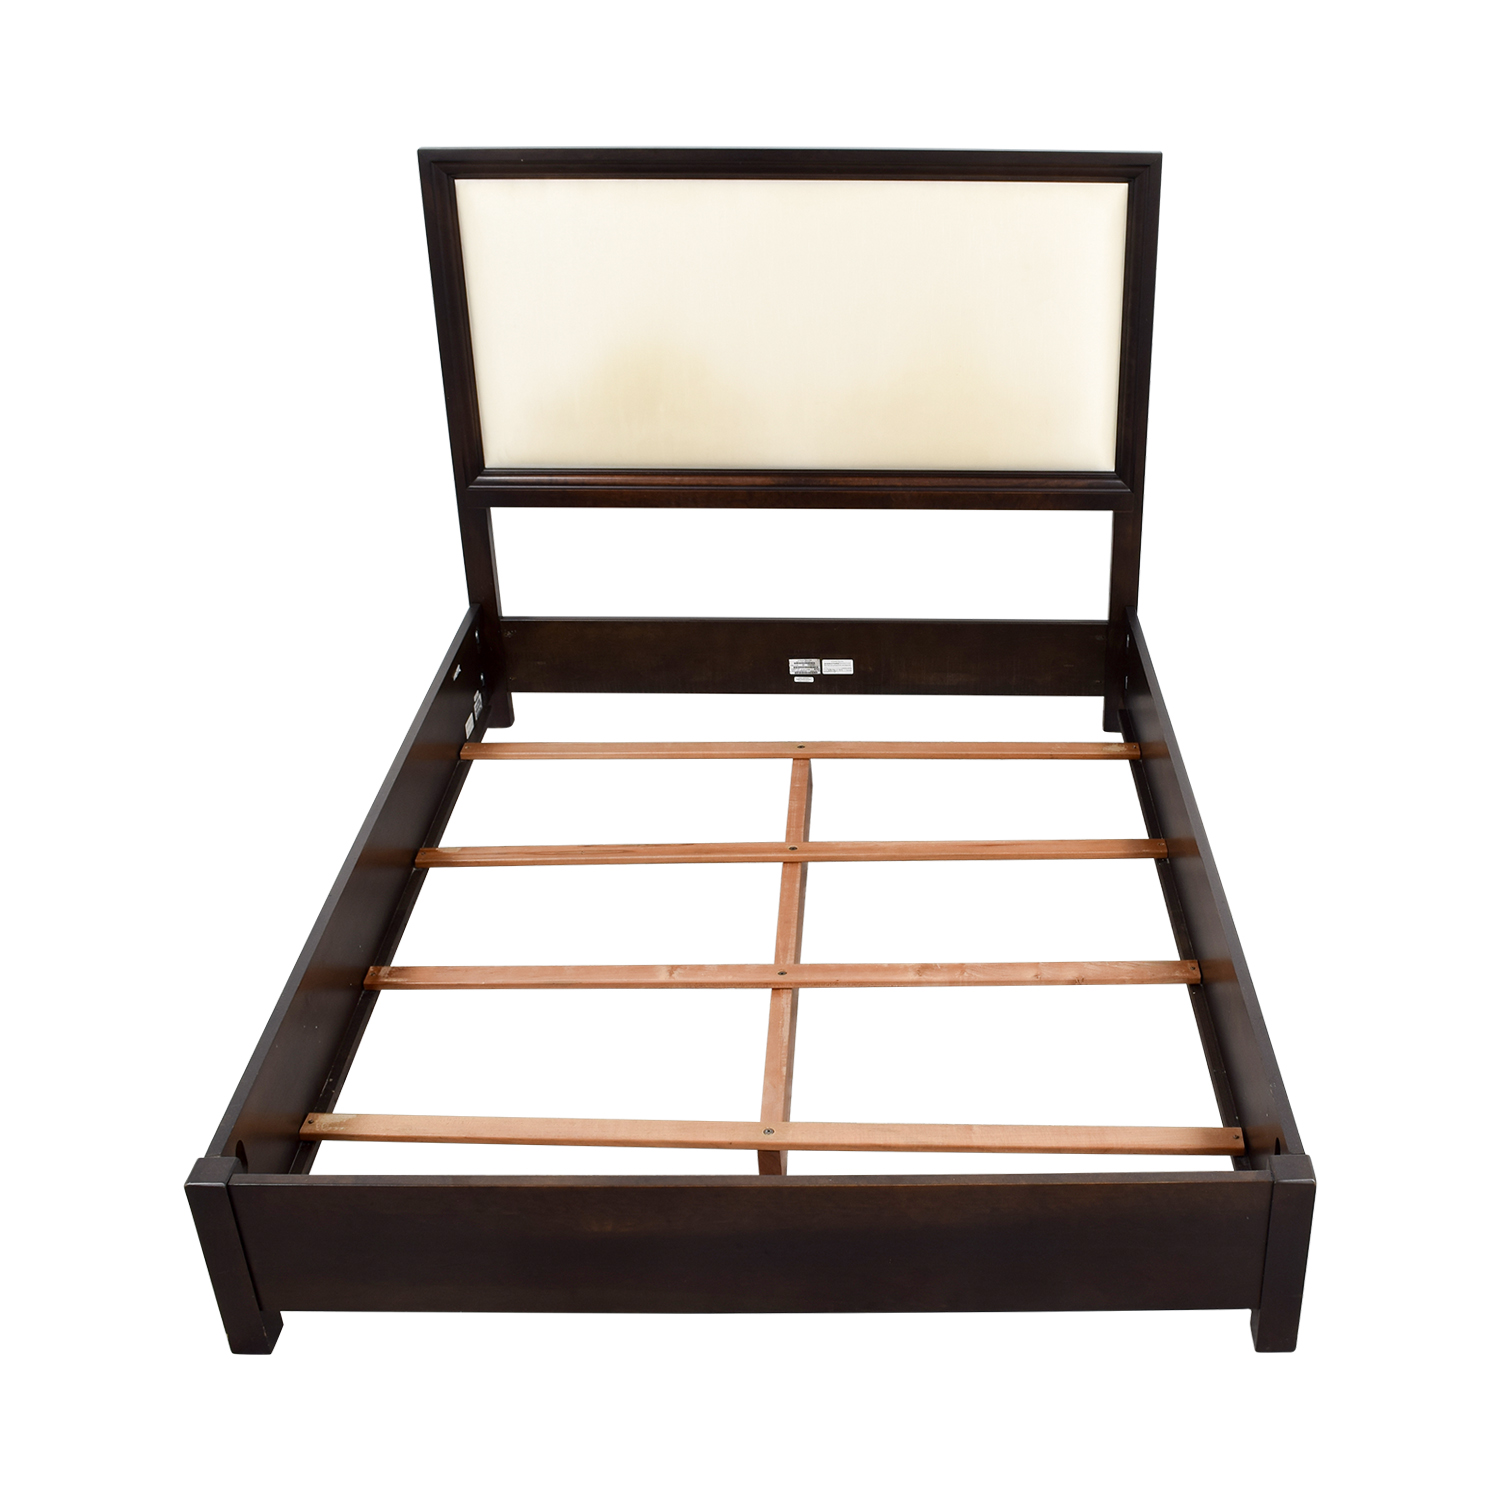 shop Ethan Allen Ethan Allen Wood and Cream Upholstered Queen Bed Frame online